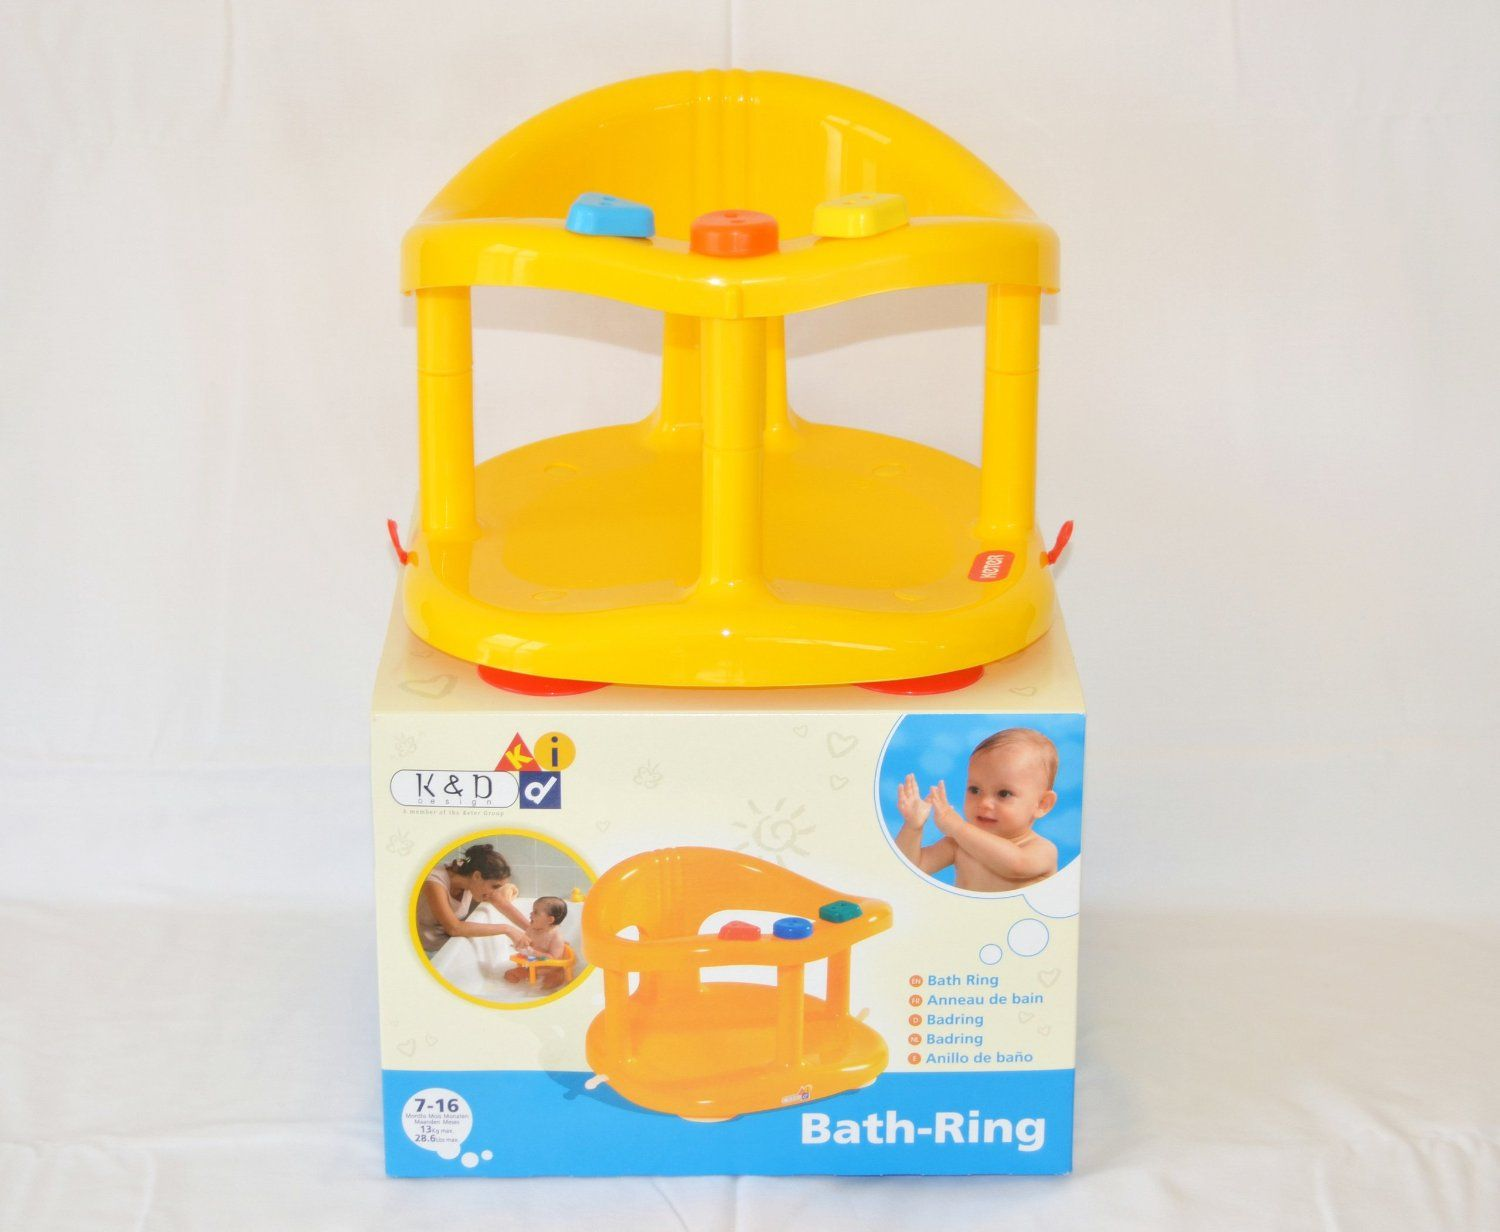 Baby Bath Tub Ring Seat New in Box By KETER - Yellow !!!: Amazon.ca ...